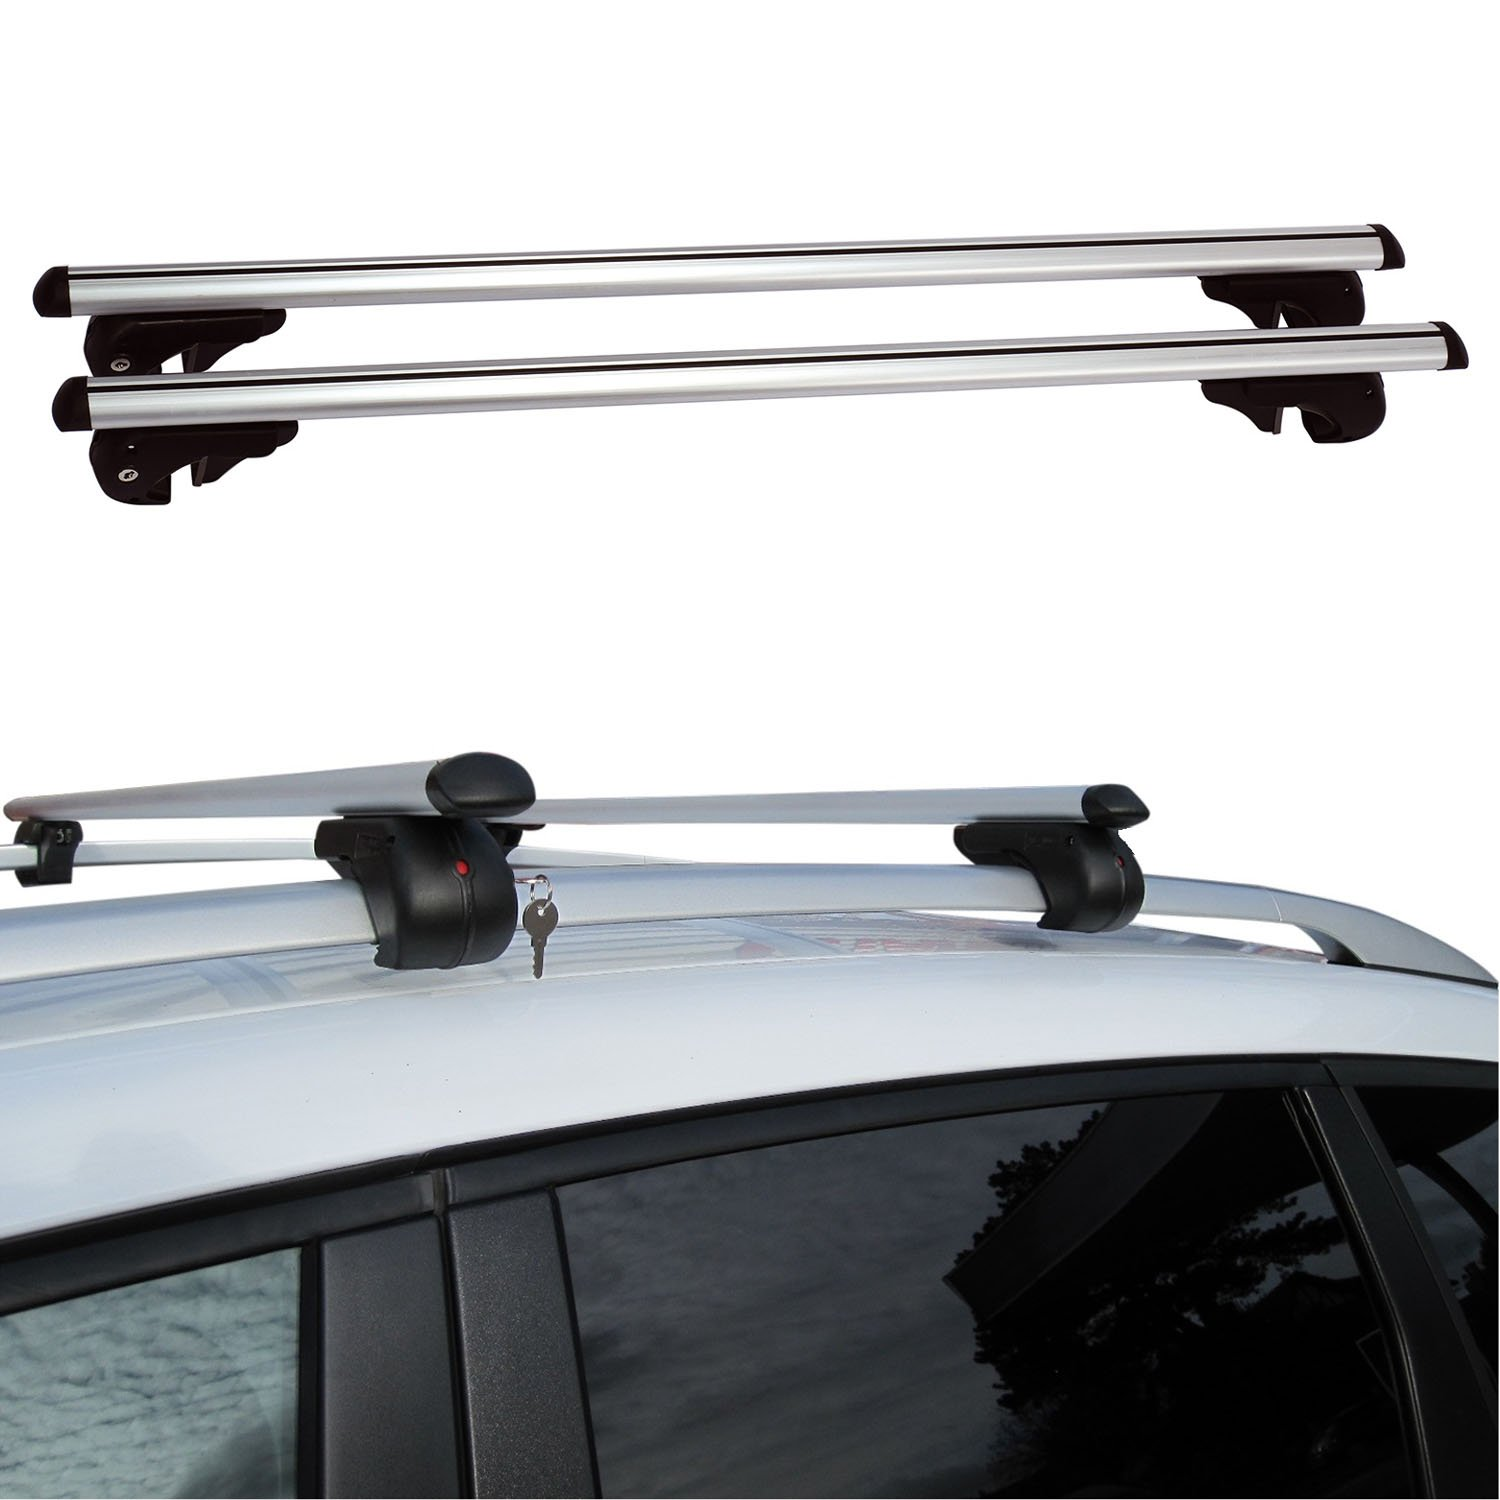 Fifth Gear® 120cm Heavy Duty Aluminium Anti-Theft Lockable Universal Roof Bars